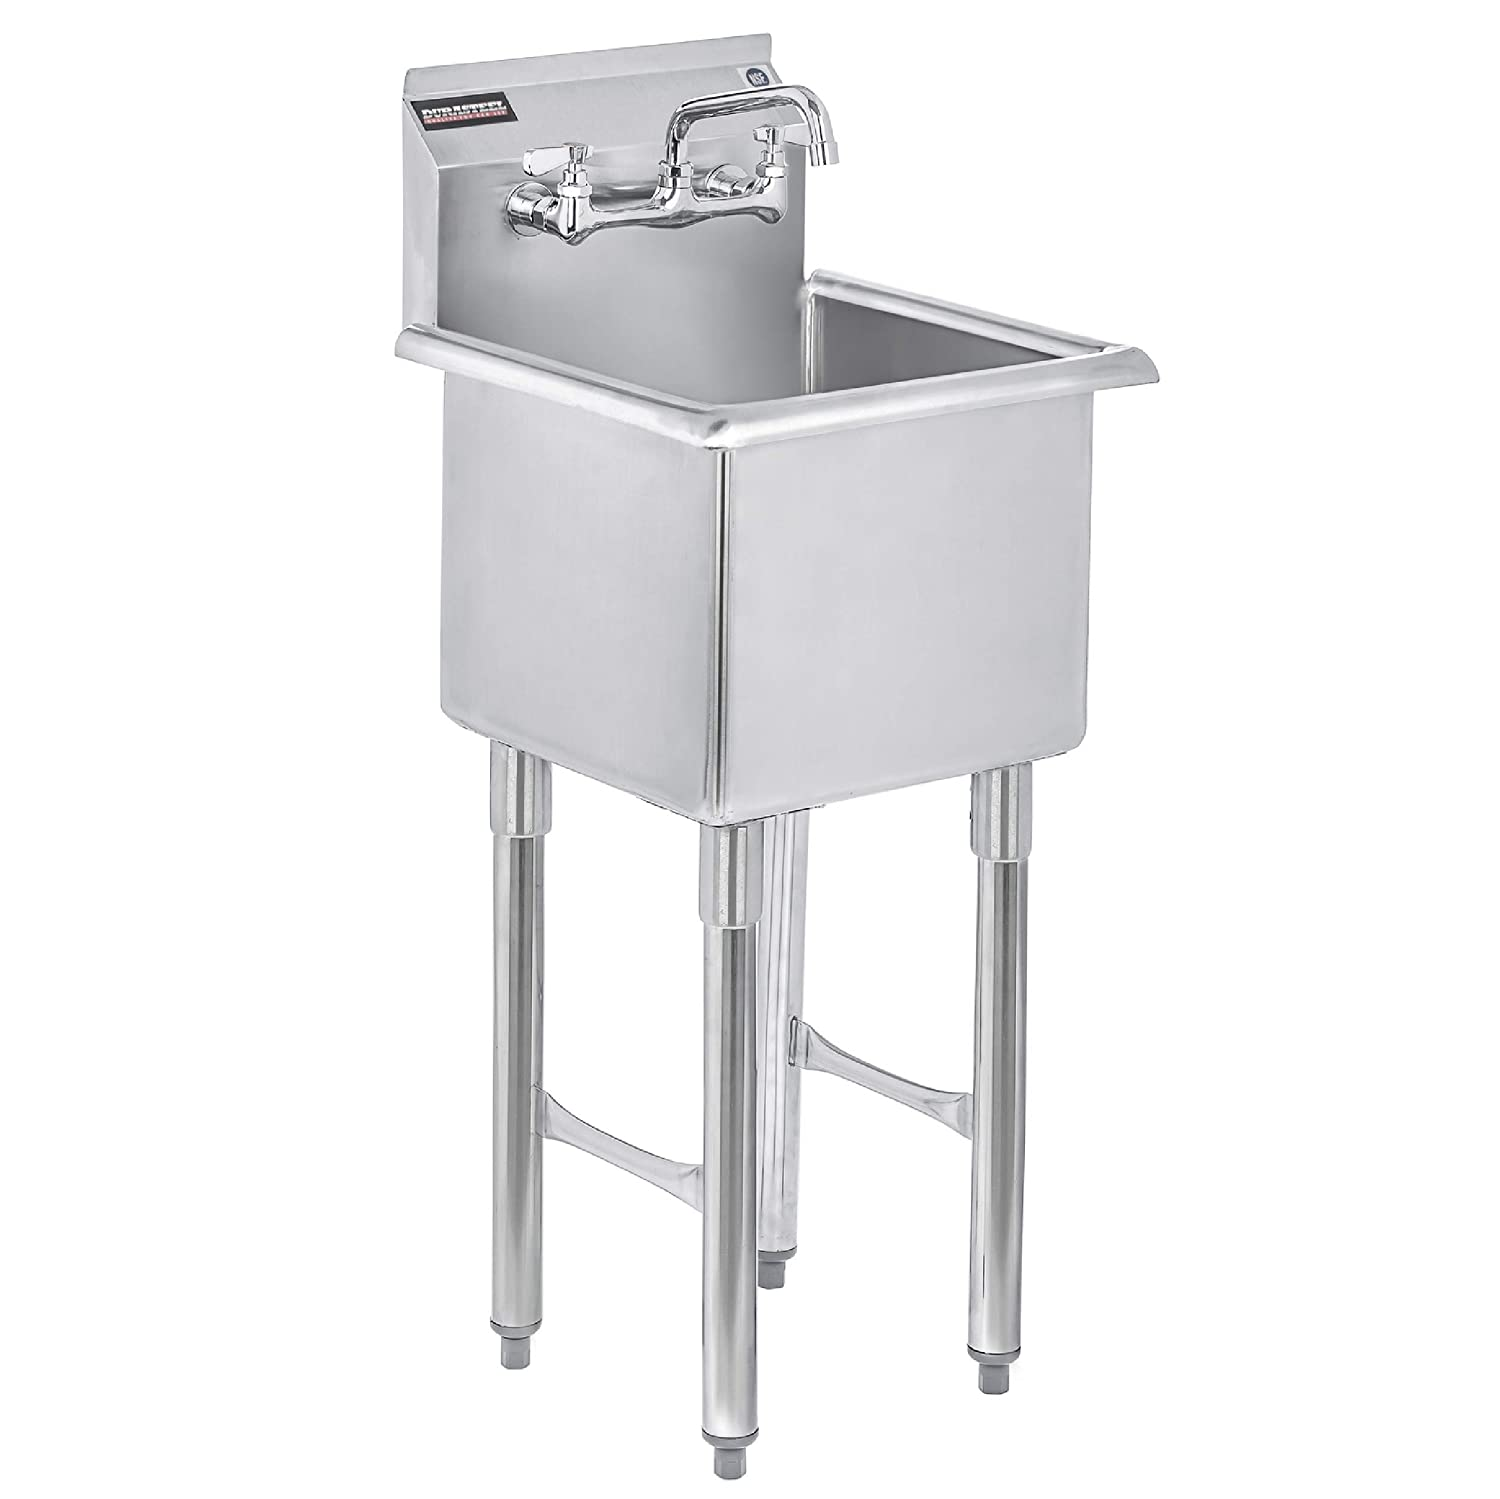 "DuraSteel Utility & Prep Sink - 1 Compartment Stainless Steel NSF Certified Easily Install - 15"" x 15"" Inner Tub Size with 6"" Swivel Spout Faucet (Commercial, Food, Kitchen, Laundry, Backyard)"